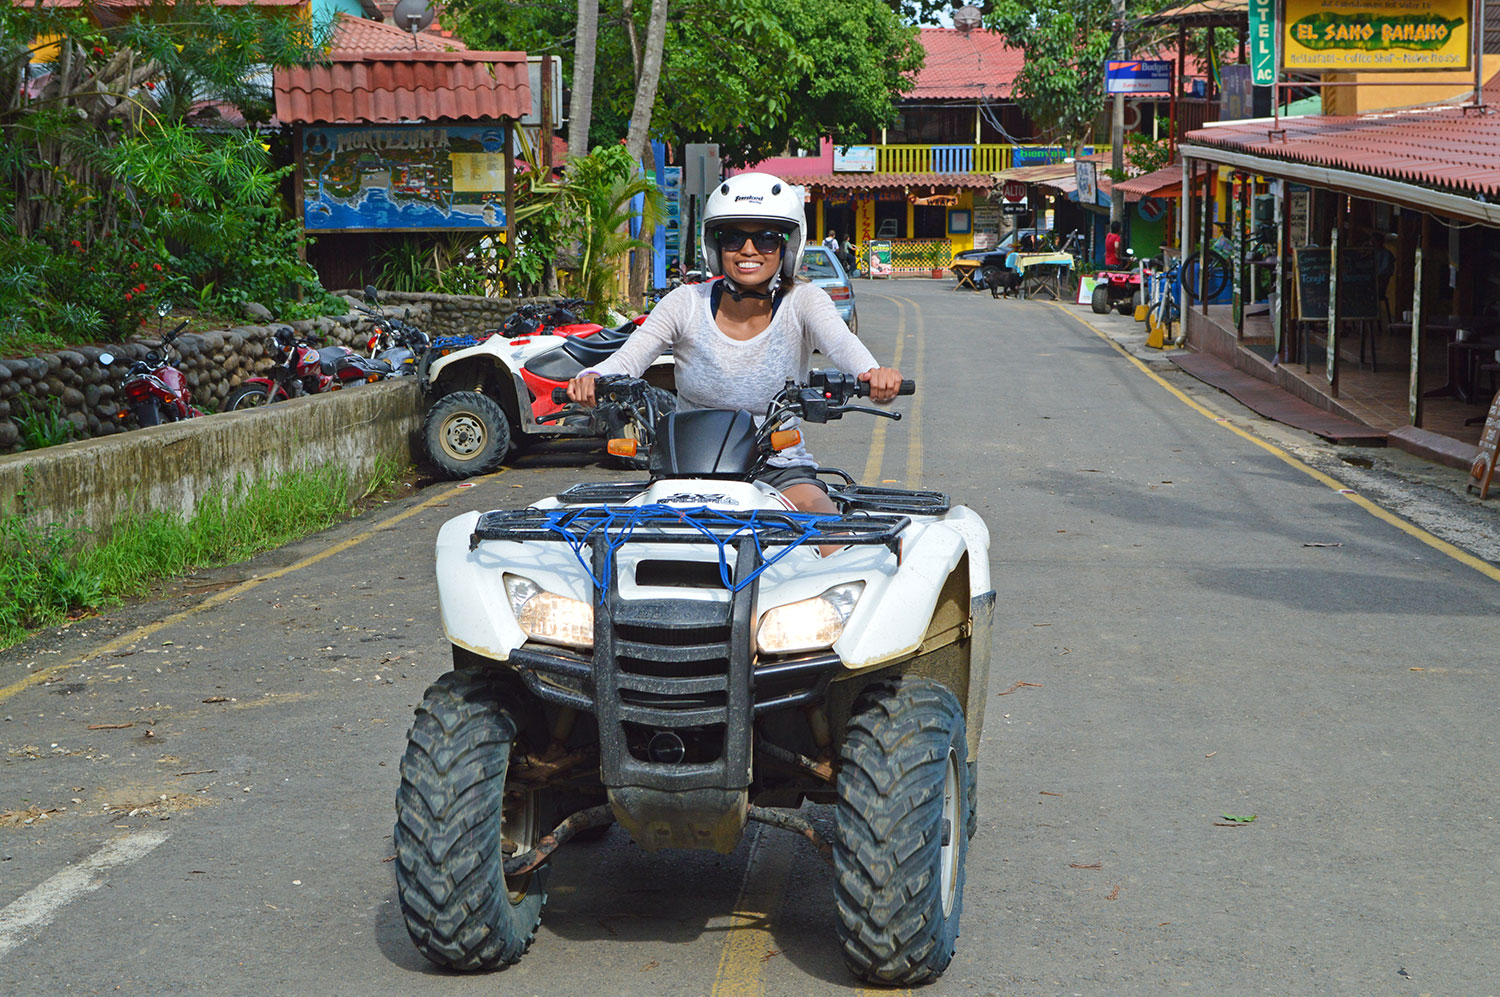 downtown-montezuma-quad-tours.jpg